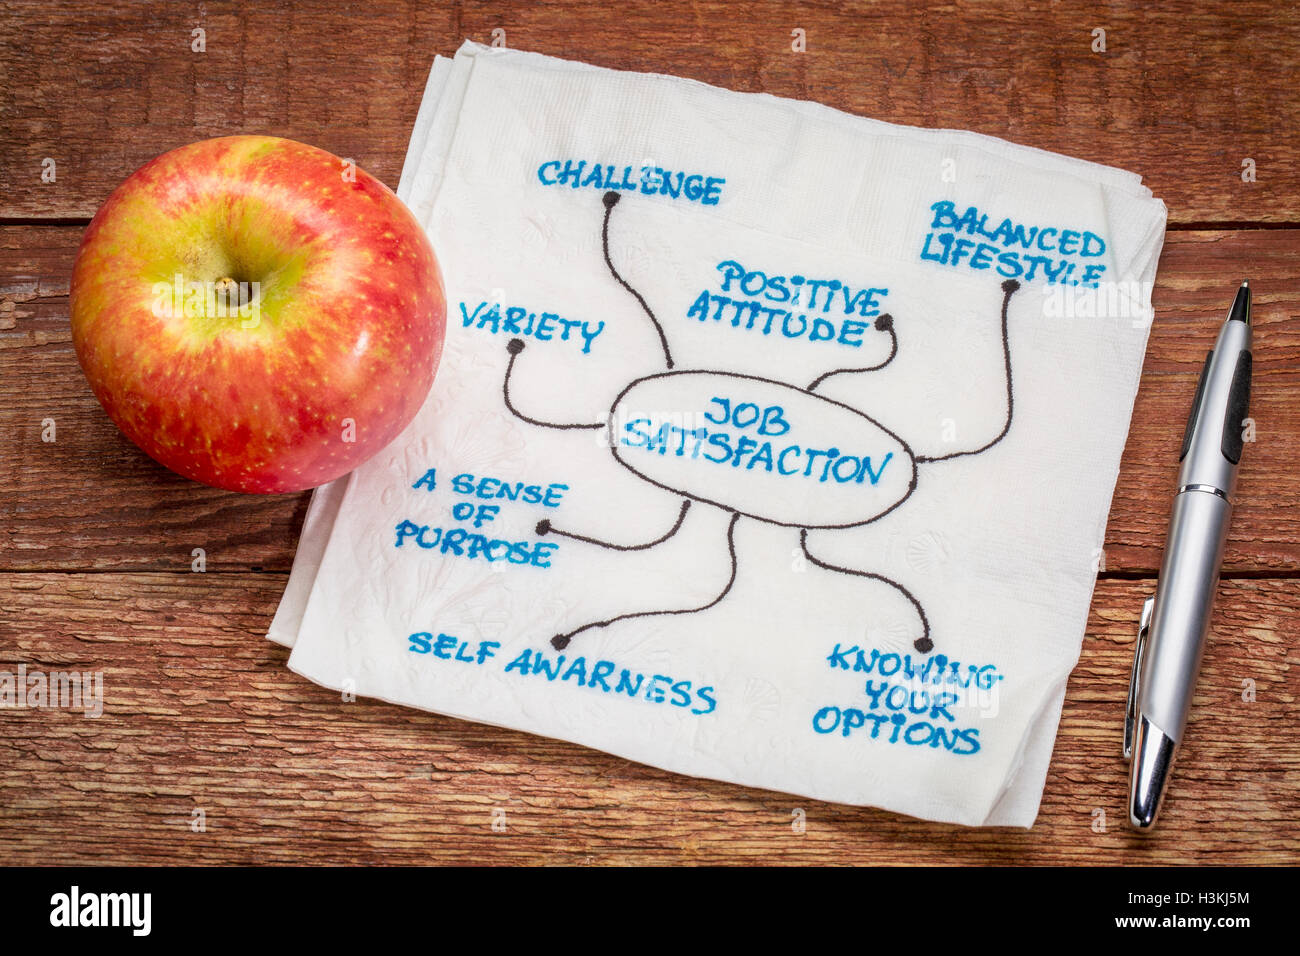 job satisfaction concept - napkin doodle with an apple on a rustic wood - Stock Image